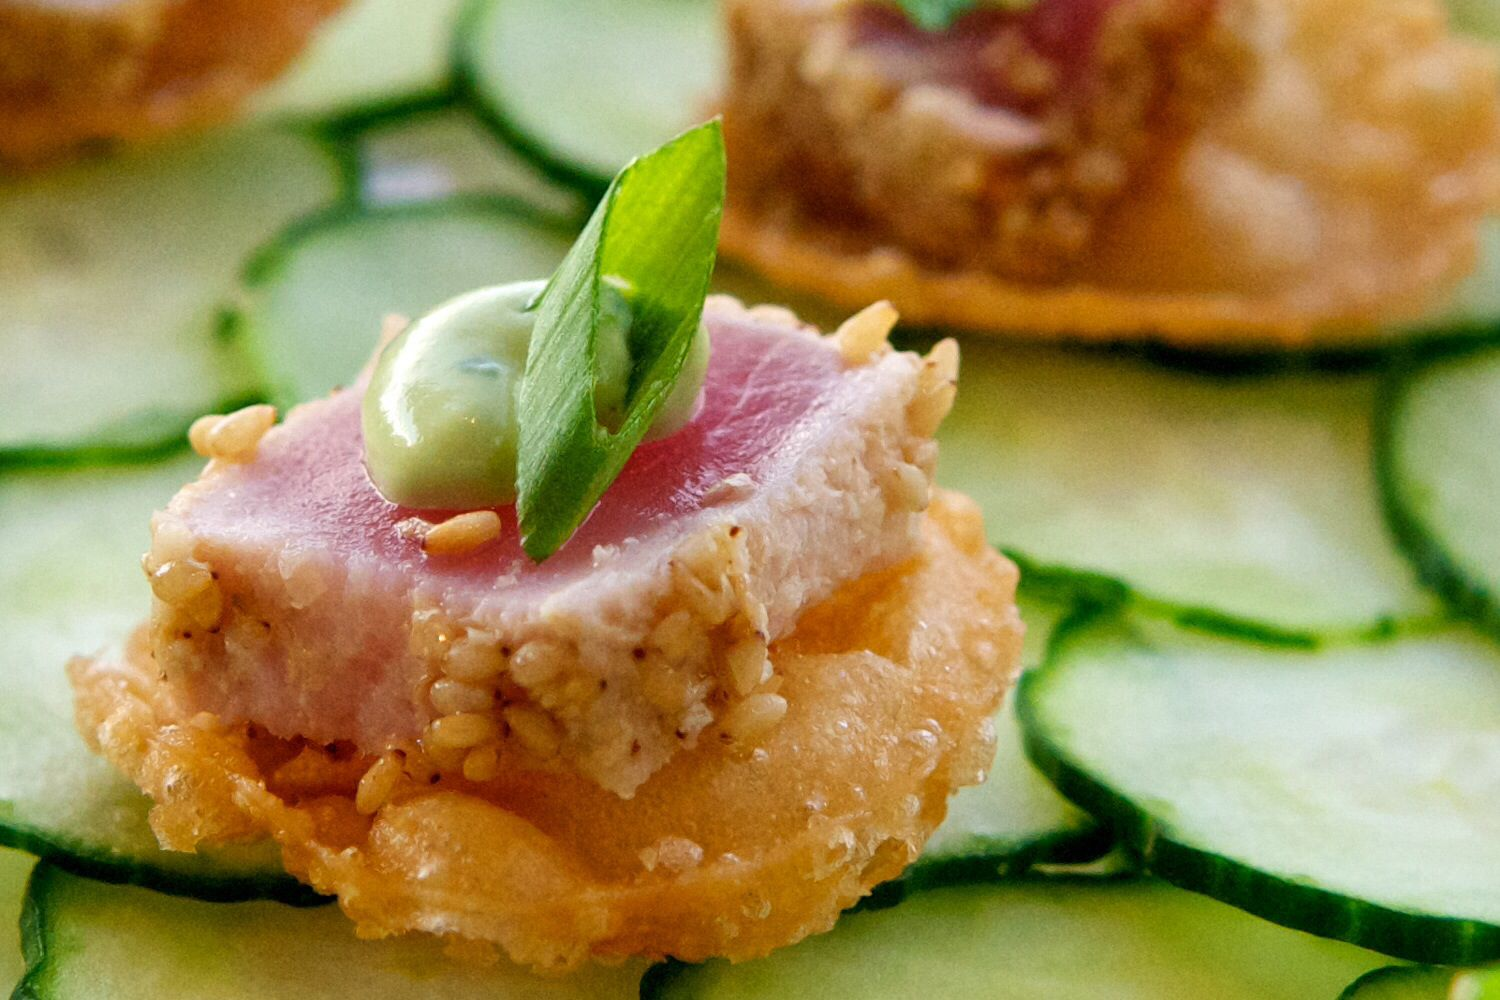 Canape Winston But Seared Tuna On Crispy Wonton Kristen Winston Appetizers Food